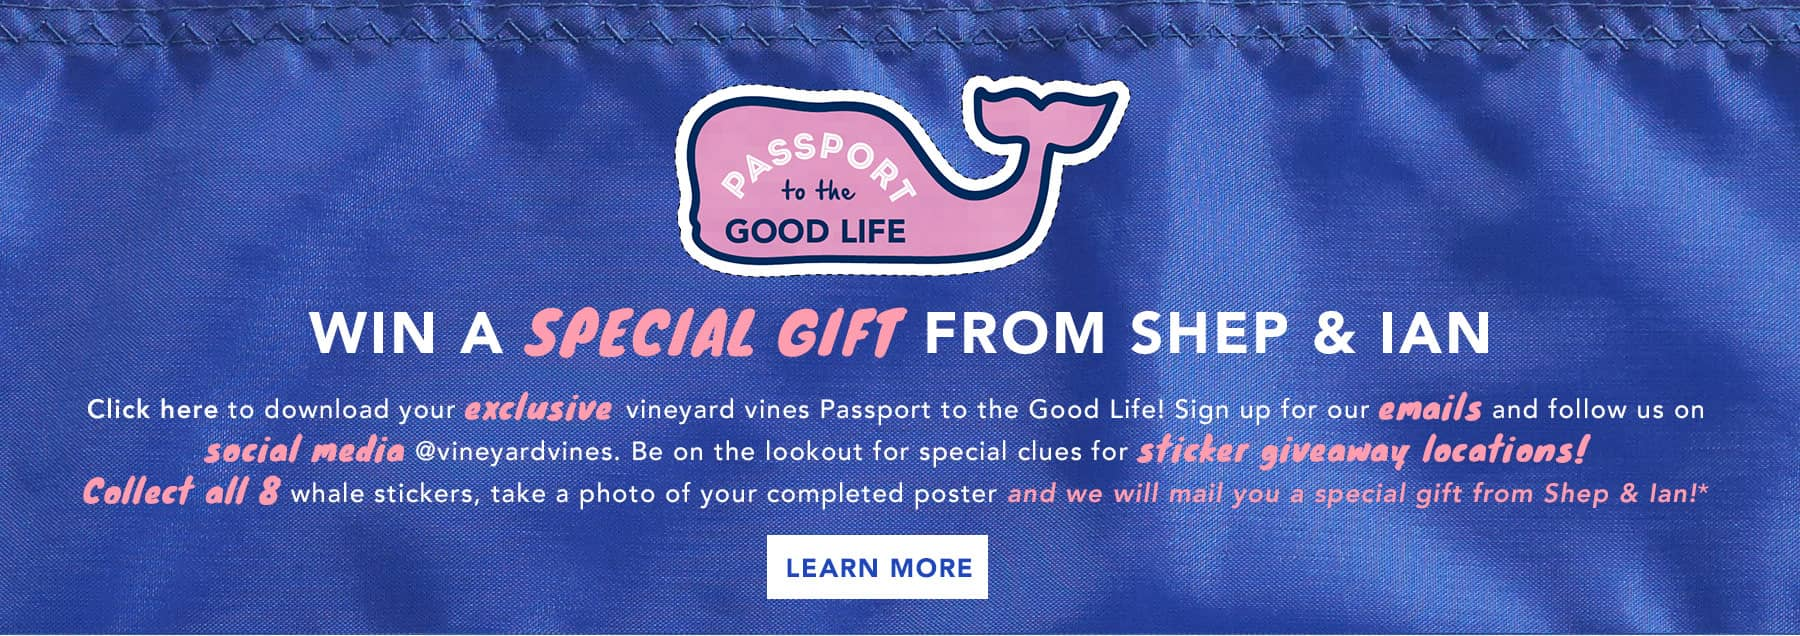 Win a special gift from Shep & Ian. Click here to download your exclusive vineyard vines Passport to the Good Life! Sign up for our email and follow us on social media @vineyardvines. Be on the lookout for special clues for sticker giveaway locations! Collect all 8 whale stickers, take a photo of your compleated poster and we will mail you a special gift from Shep & Ian. Learn More.